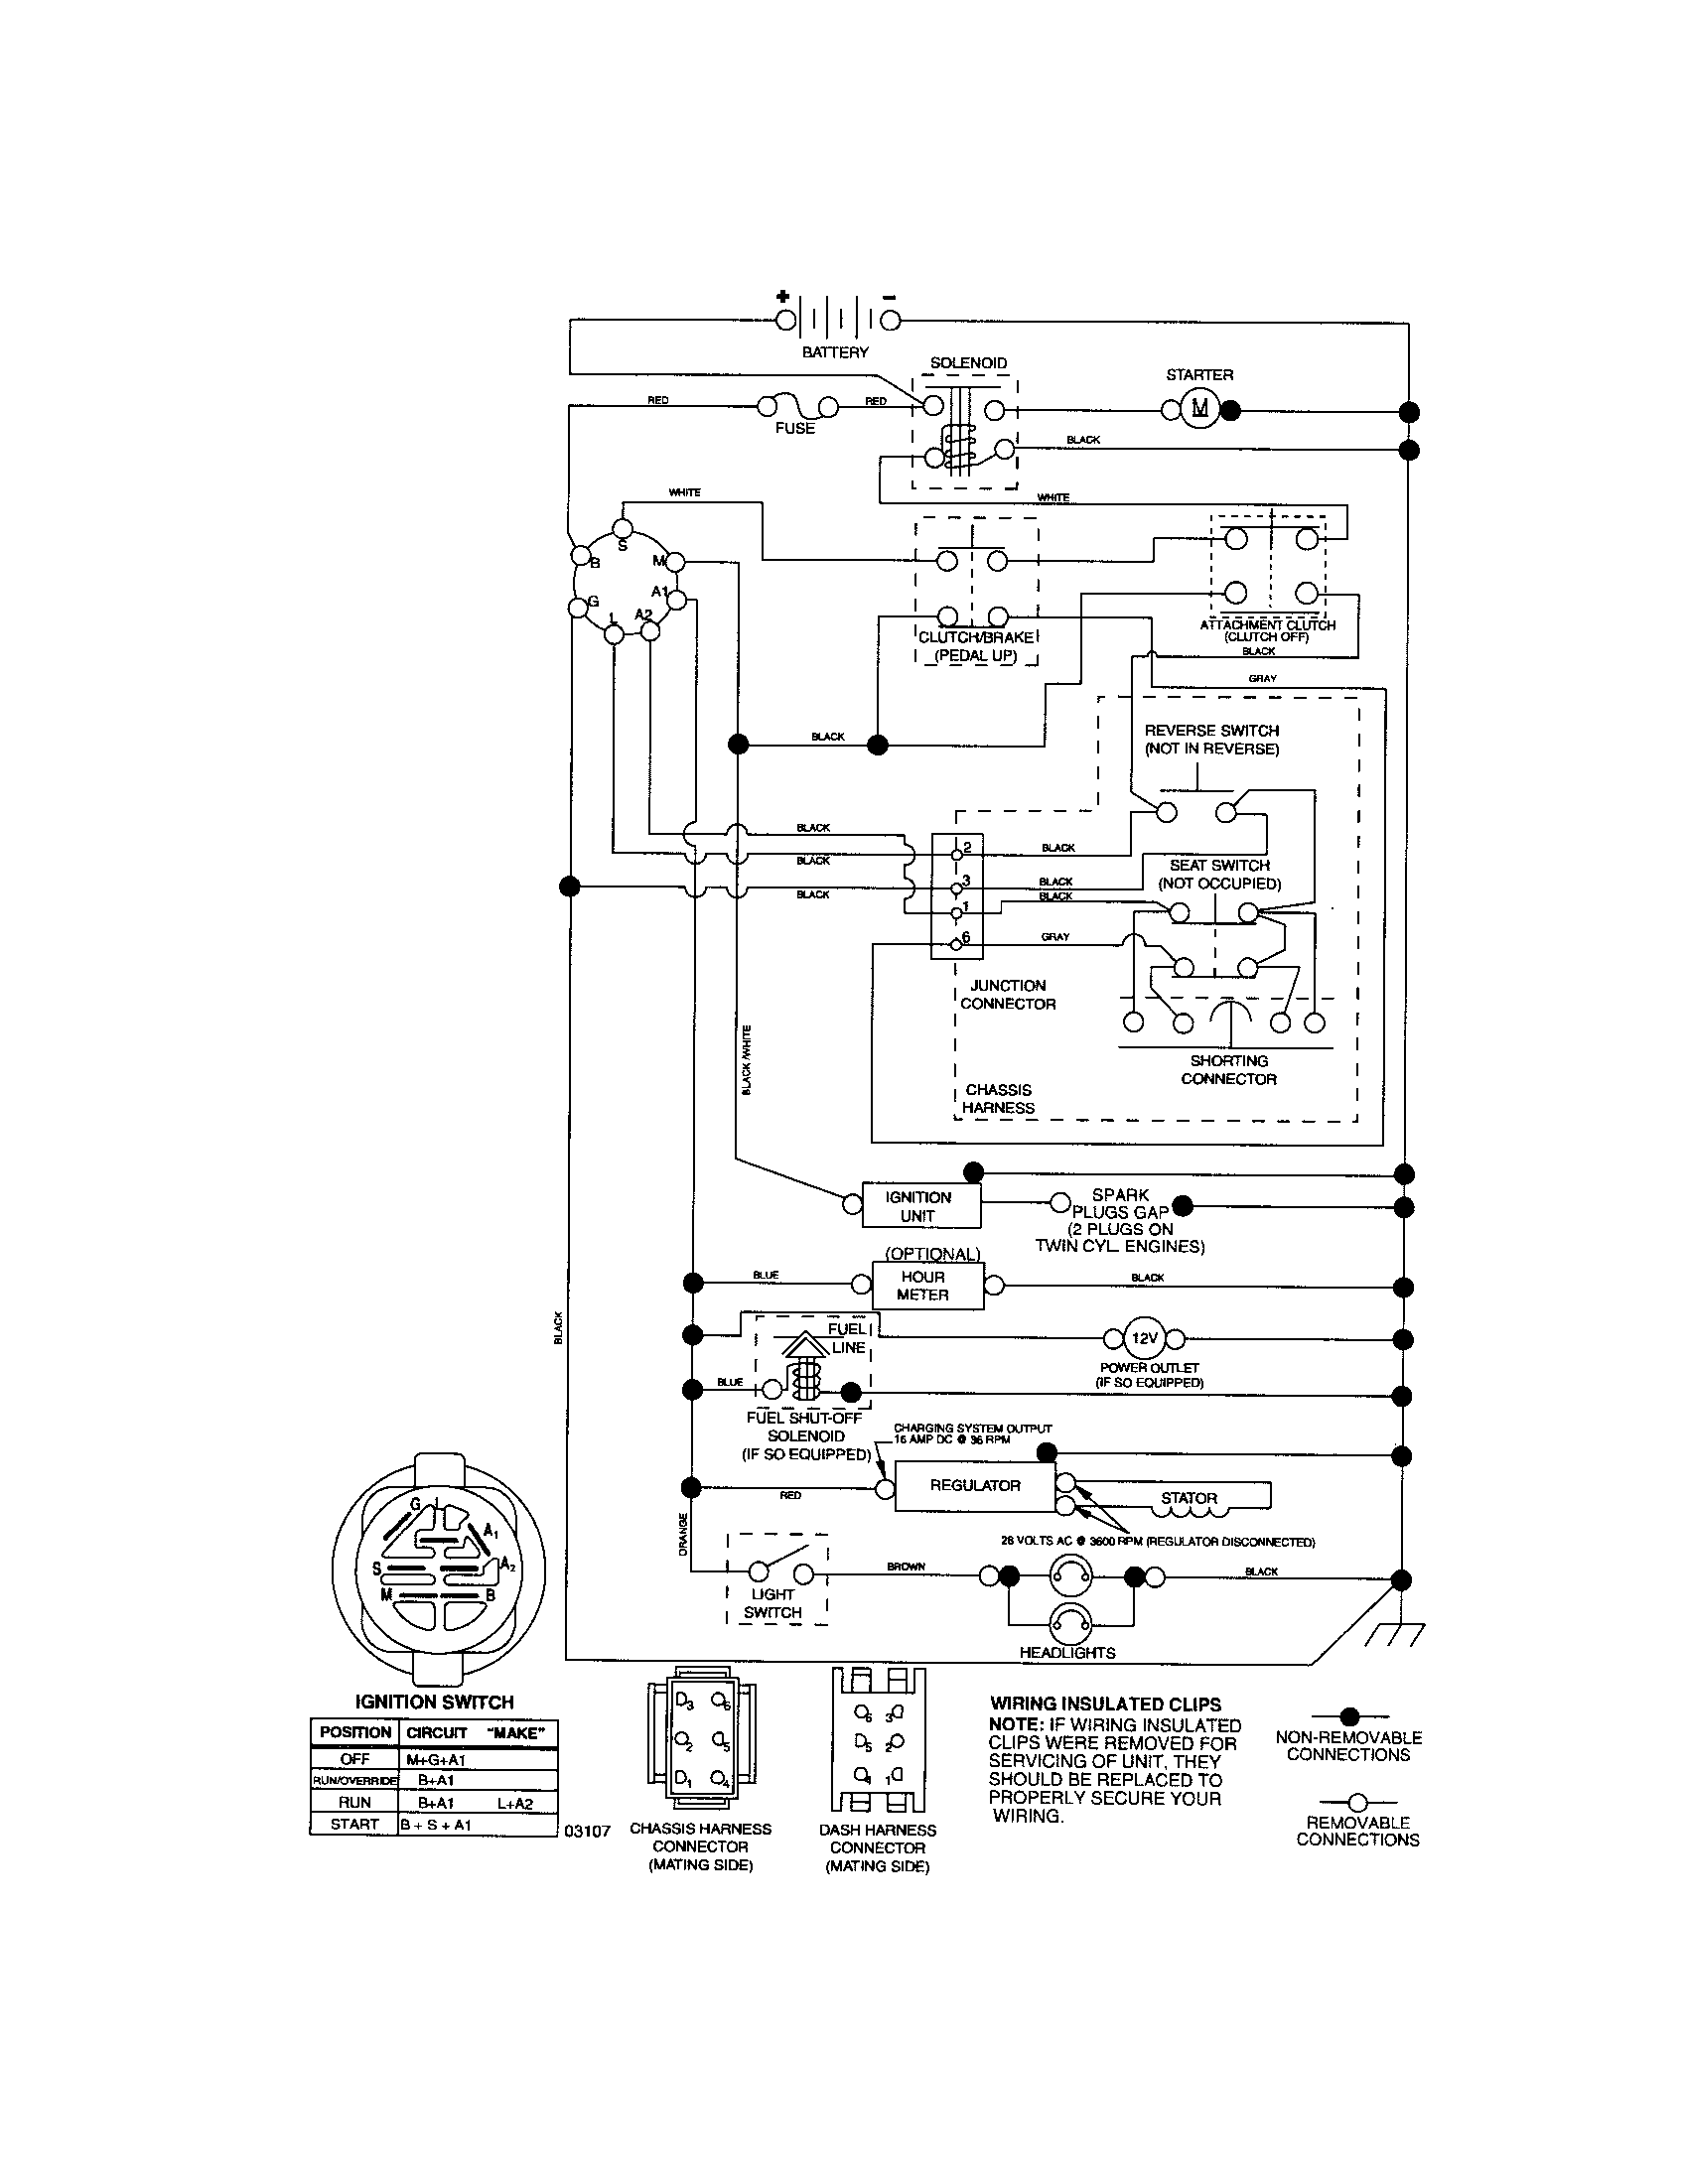 6af5f1447fd13c8443376822ddc1e105 craftsman riding mower electrical diagram wiring diagram murray lawn mower ignition switch wiring diagram at webbmarketing.co